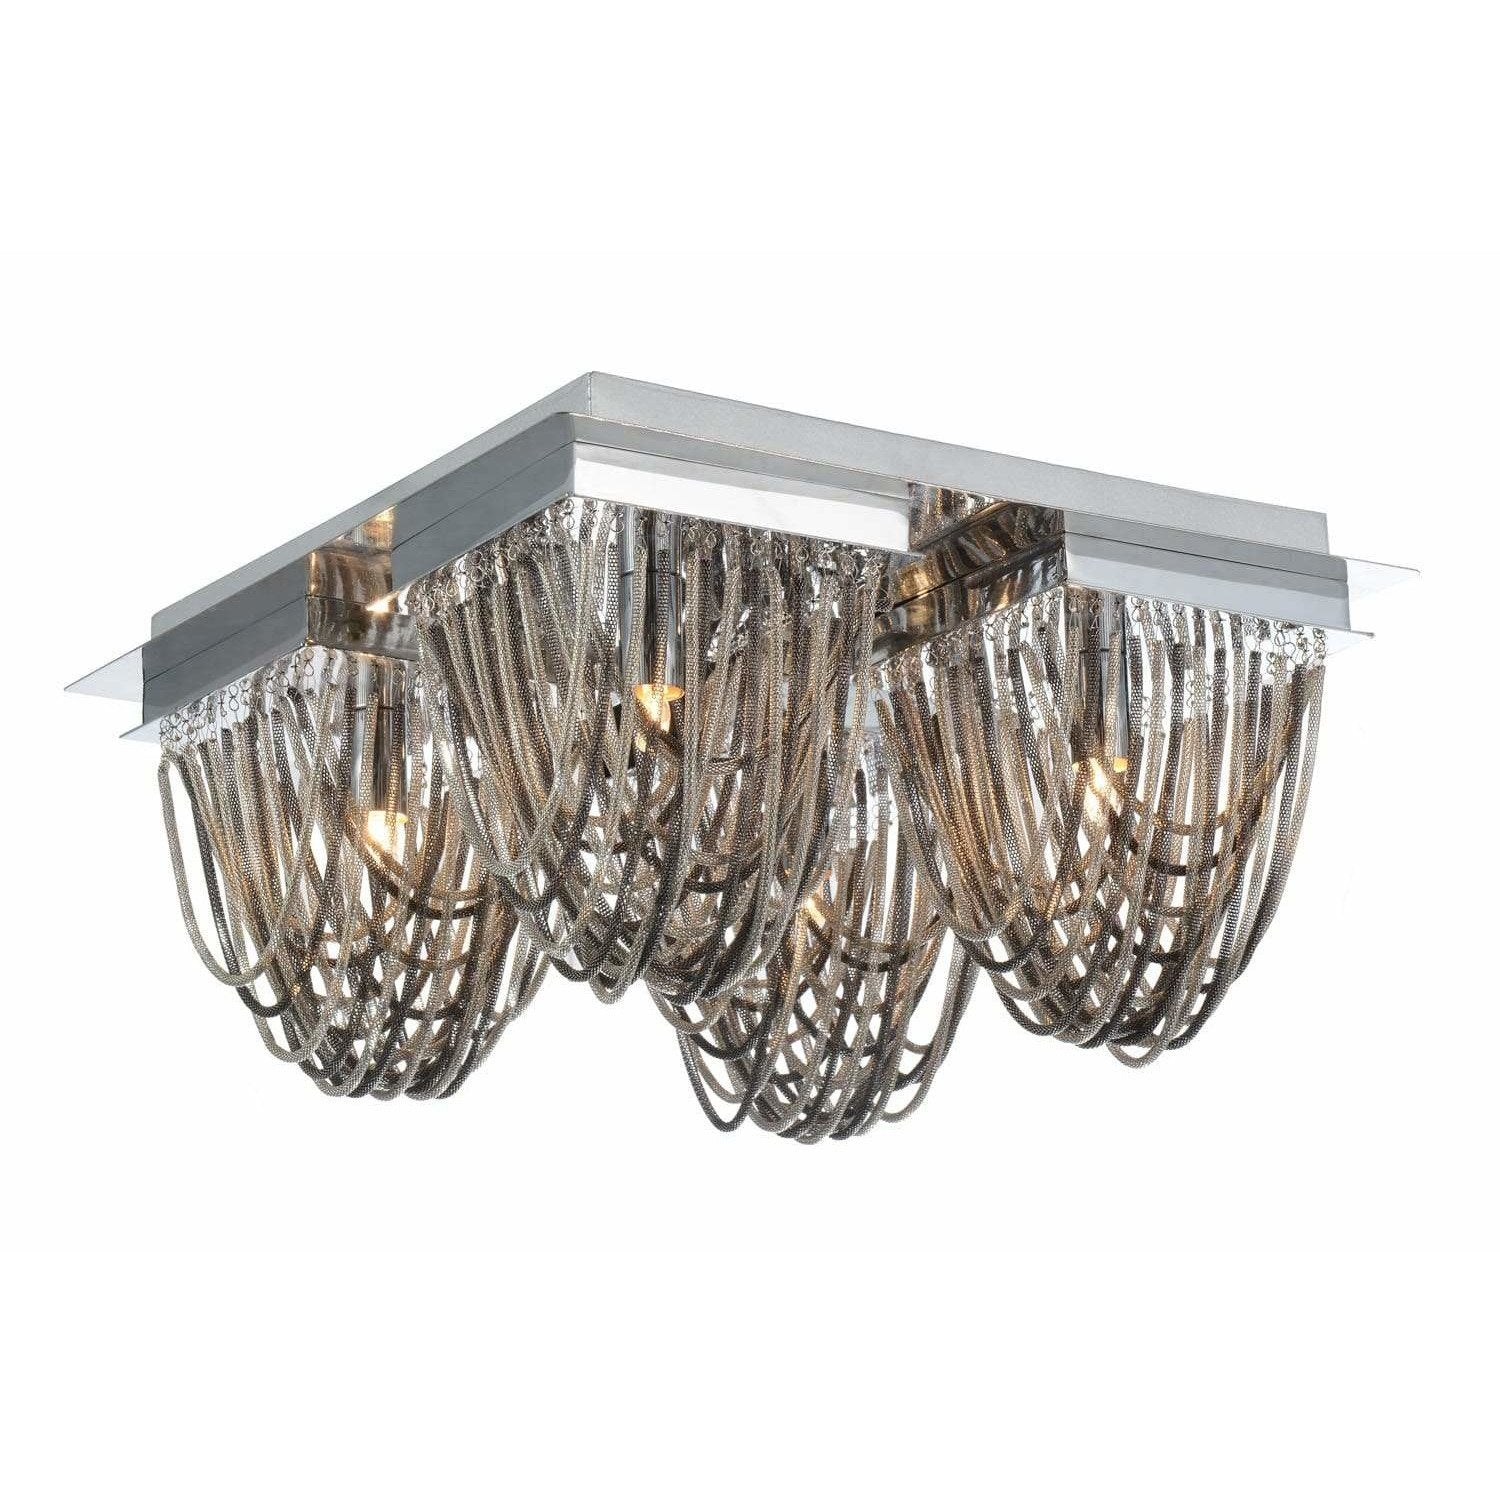 CWI Lighting Flush Mounts Chrome Isla 4 Light Flush Mount with Chrome finish by CWI Lighting 5702C14C-S